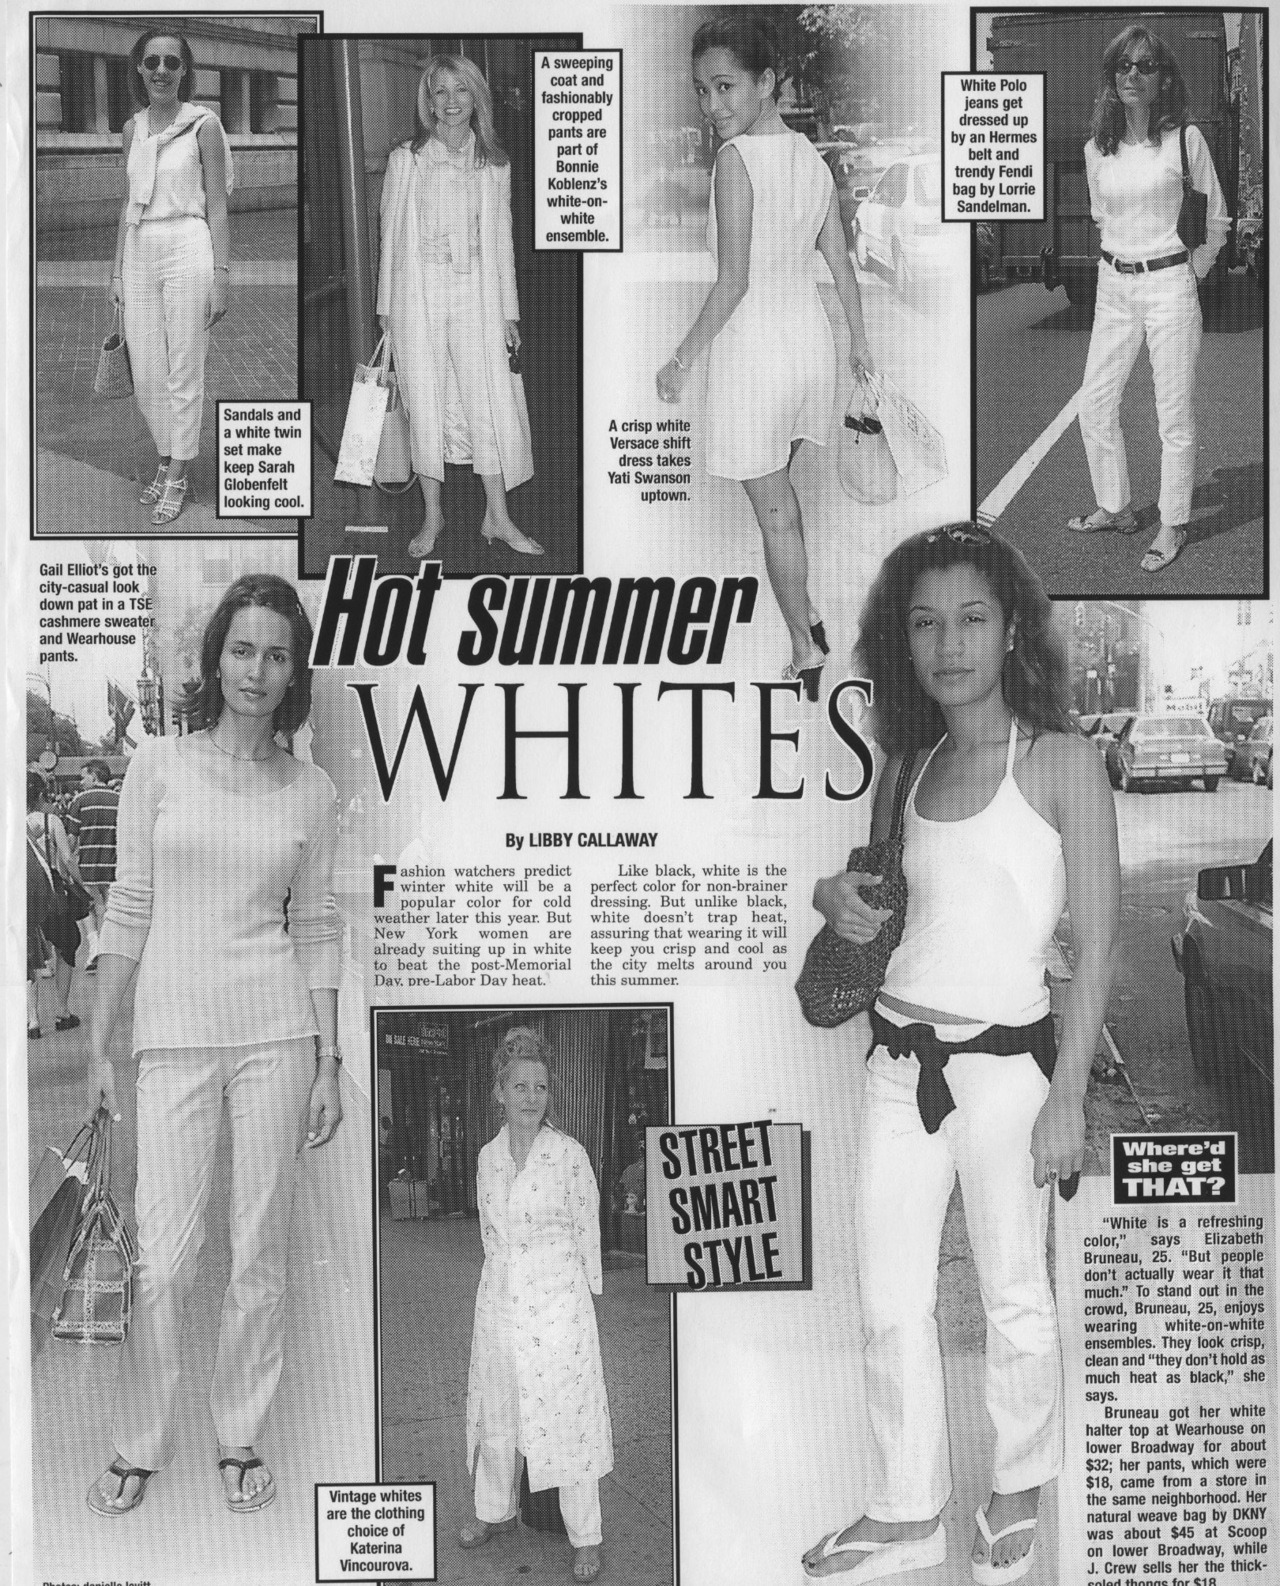 ♪♫♬ whites on whites on whites ♪♫♬Here's another NY POST street fashion and it's all about crisp summer whites! Like black, white is classic and super chic! Pair with tan for best results~!